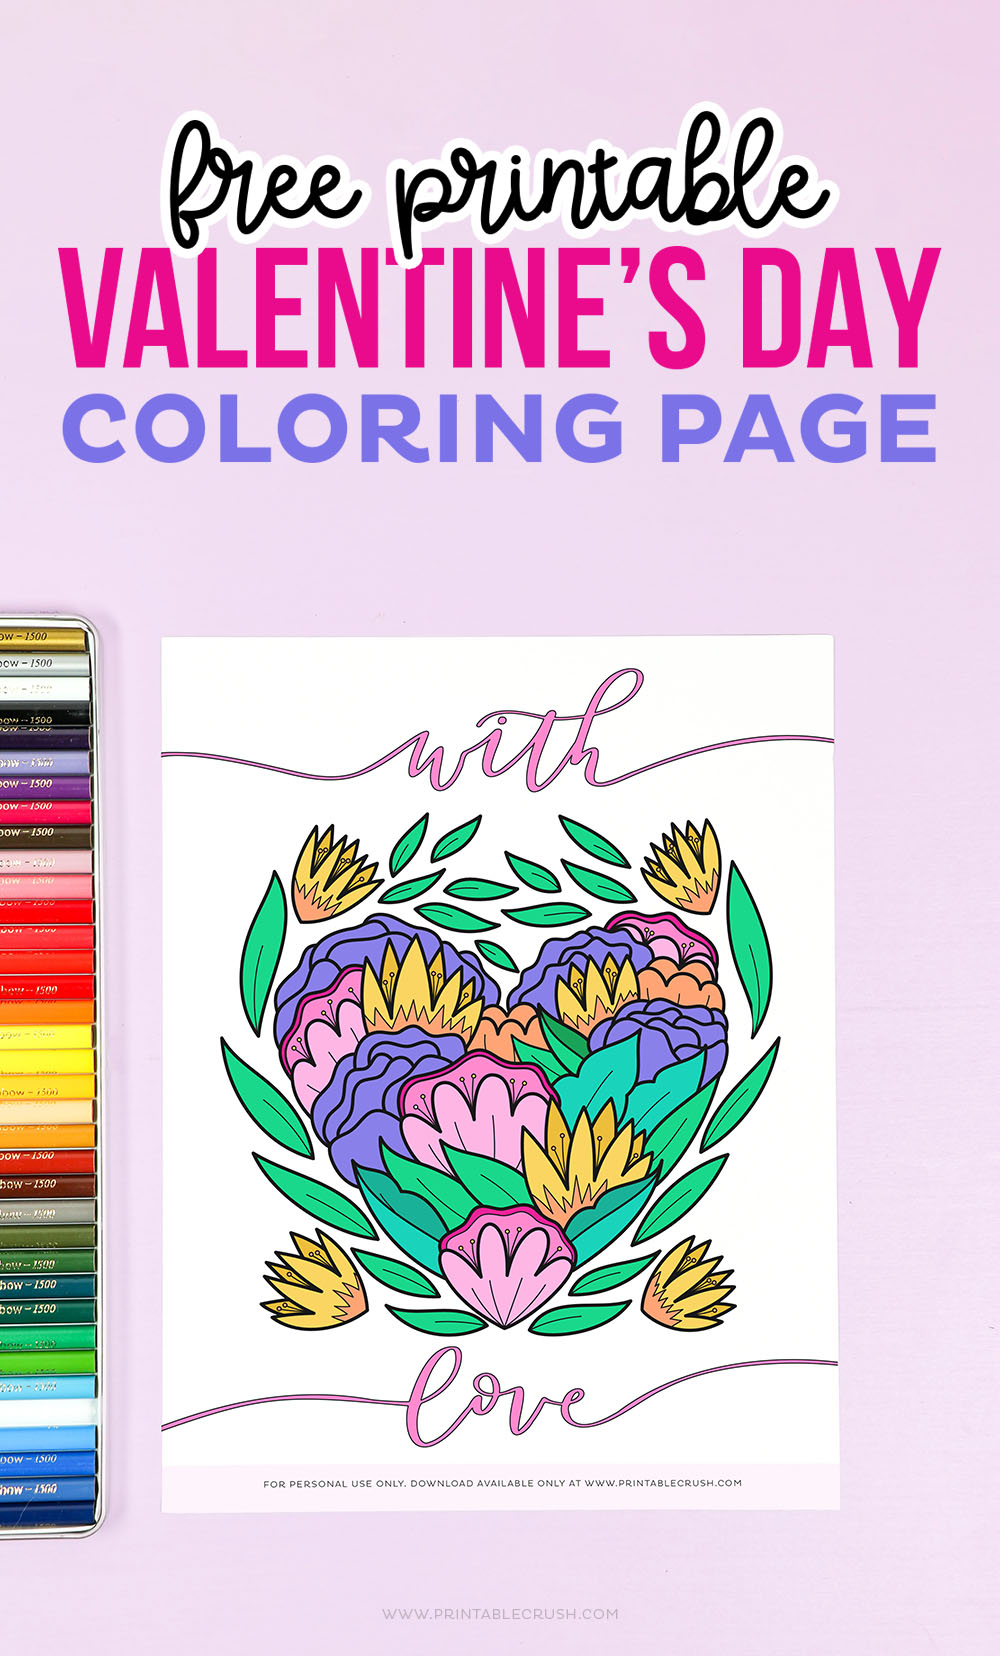 Free Coloring Page for Valentine's Day - Valentine's Day Coloring Sheet - Free Printable Coloring Page - Printable Crush